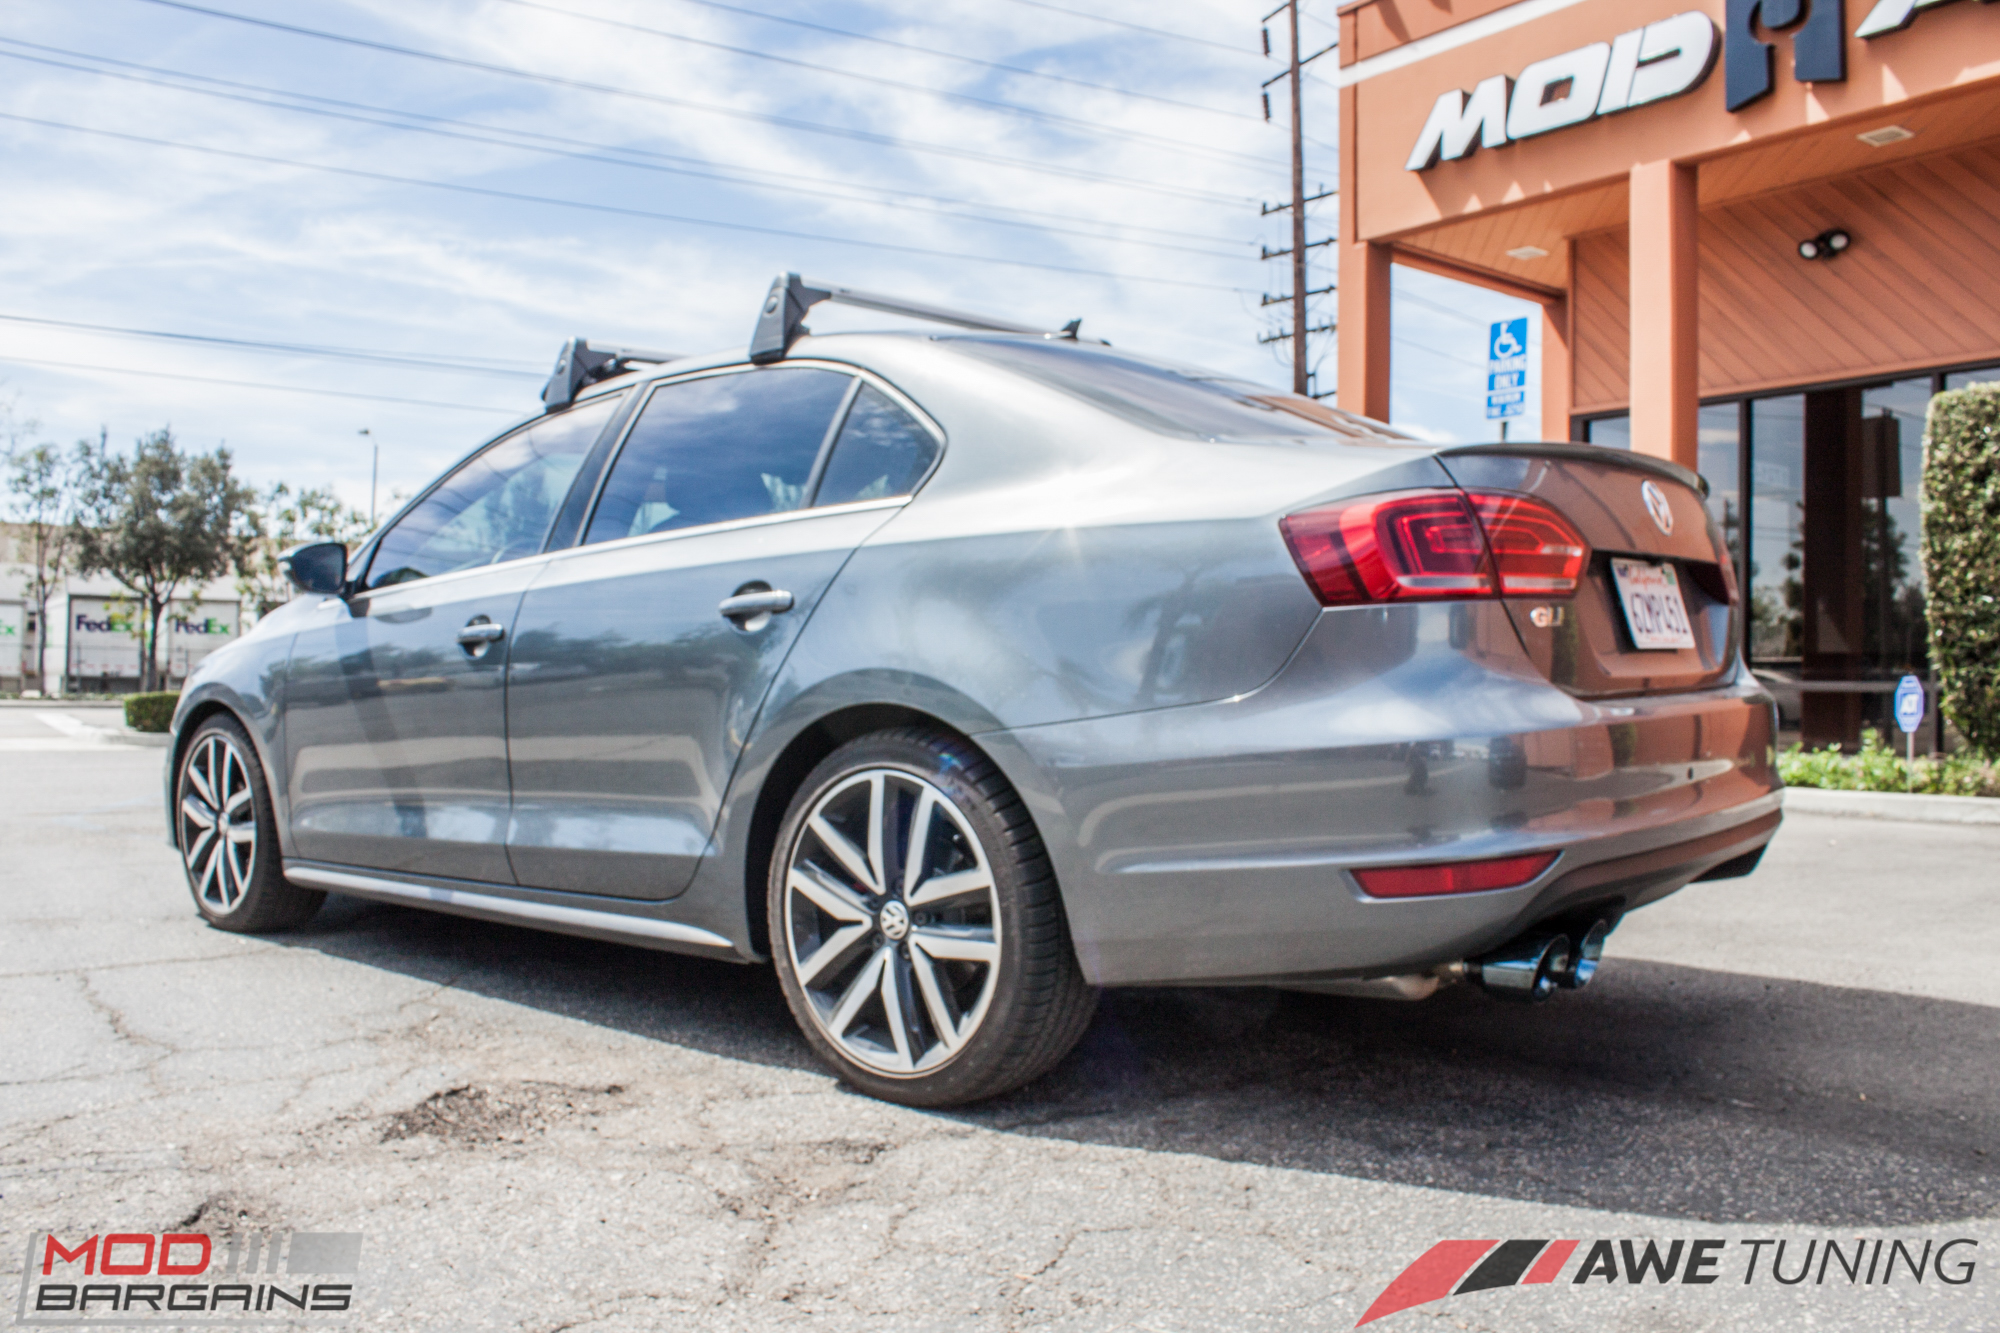 AWE Tuning Exhaust for Jetta GLI Installed @ ModAuto